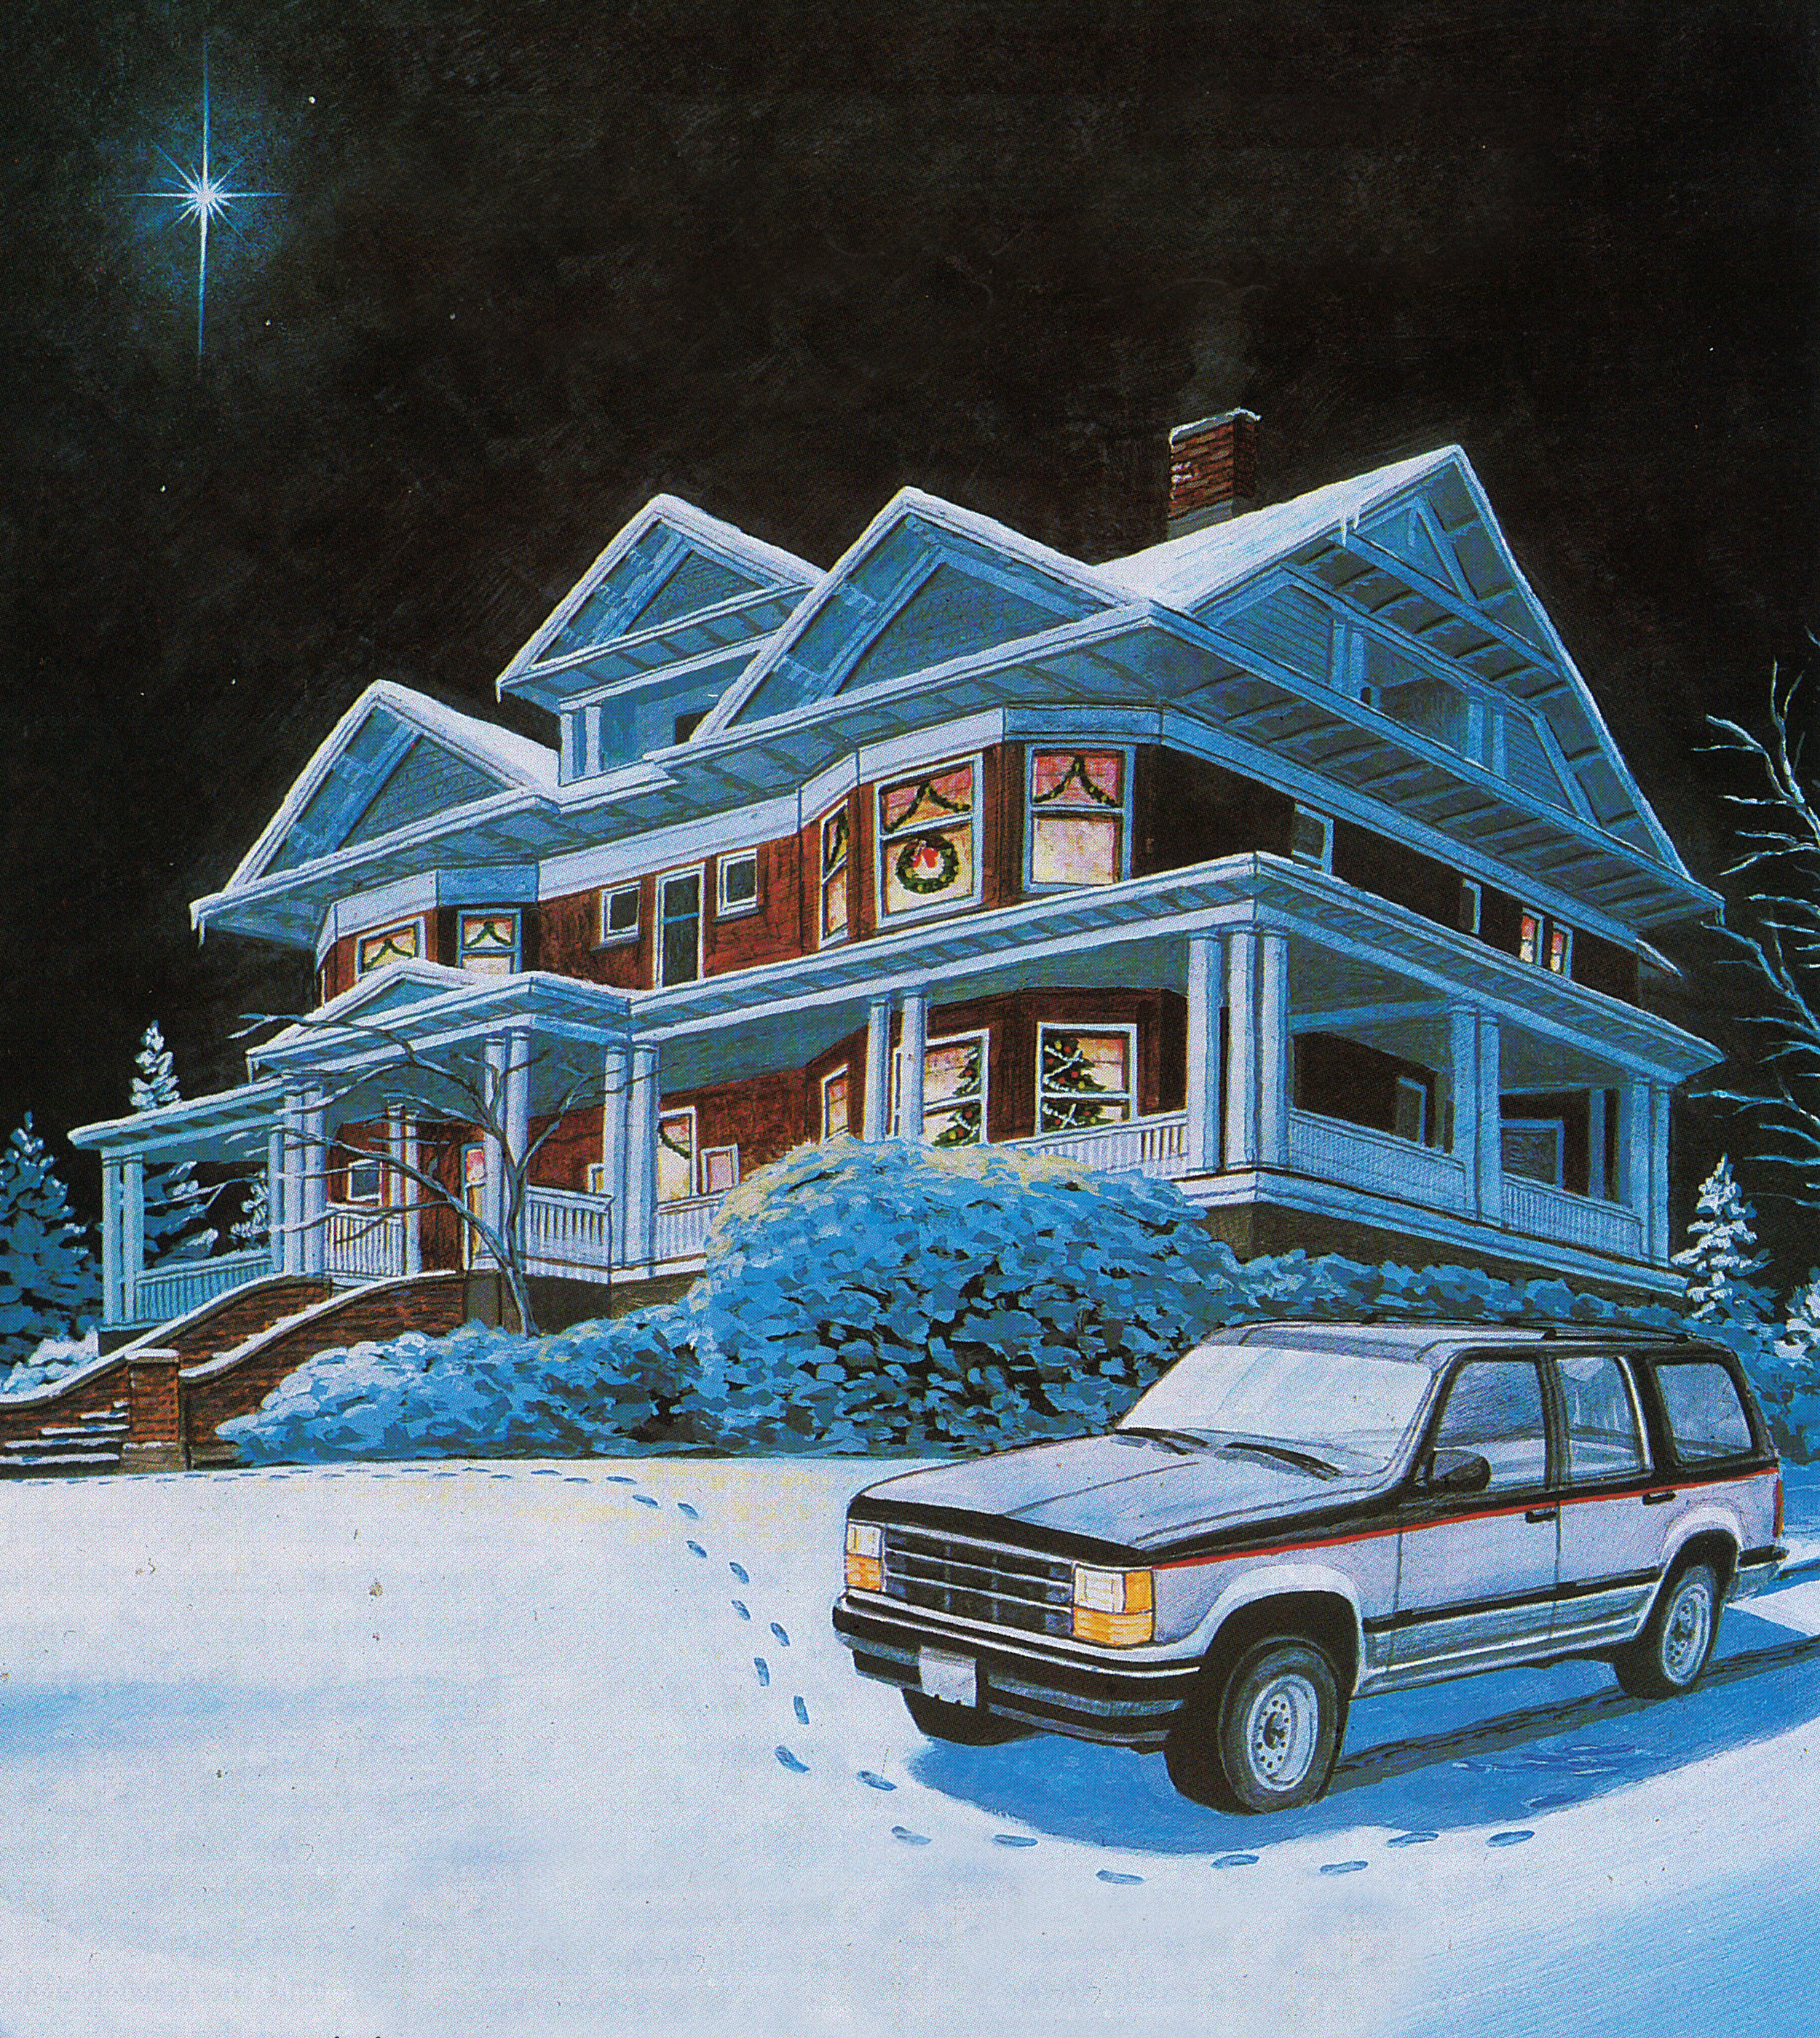 A painting Barb had commissioned of the Rucker Mansion back in the 1990s. The mansion still looks the same (see the first image of this article which was taken in 2019), but Barb does not drive a Ford Explorer anymore.